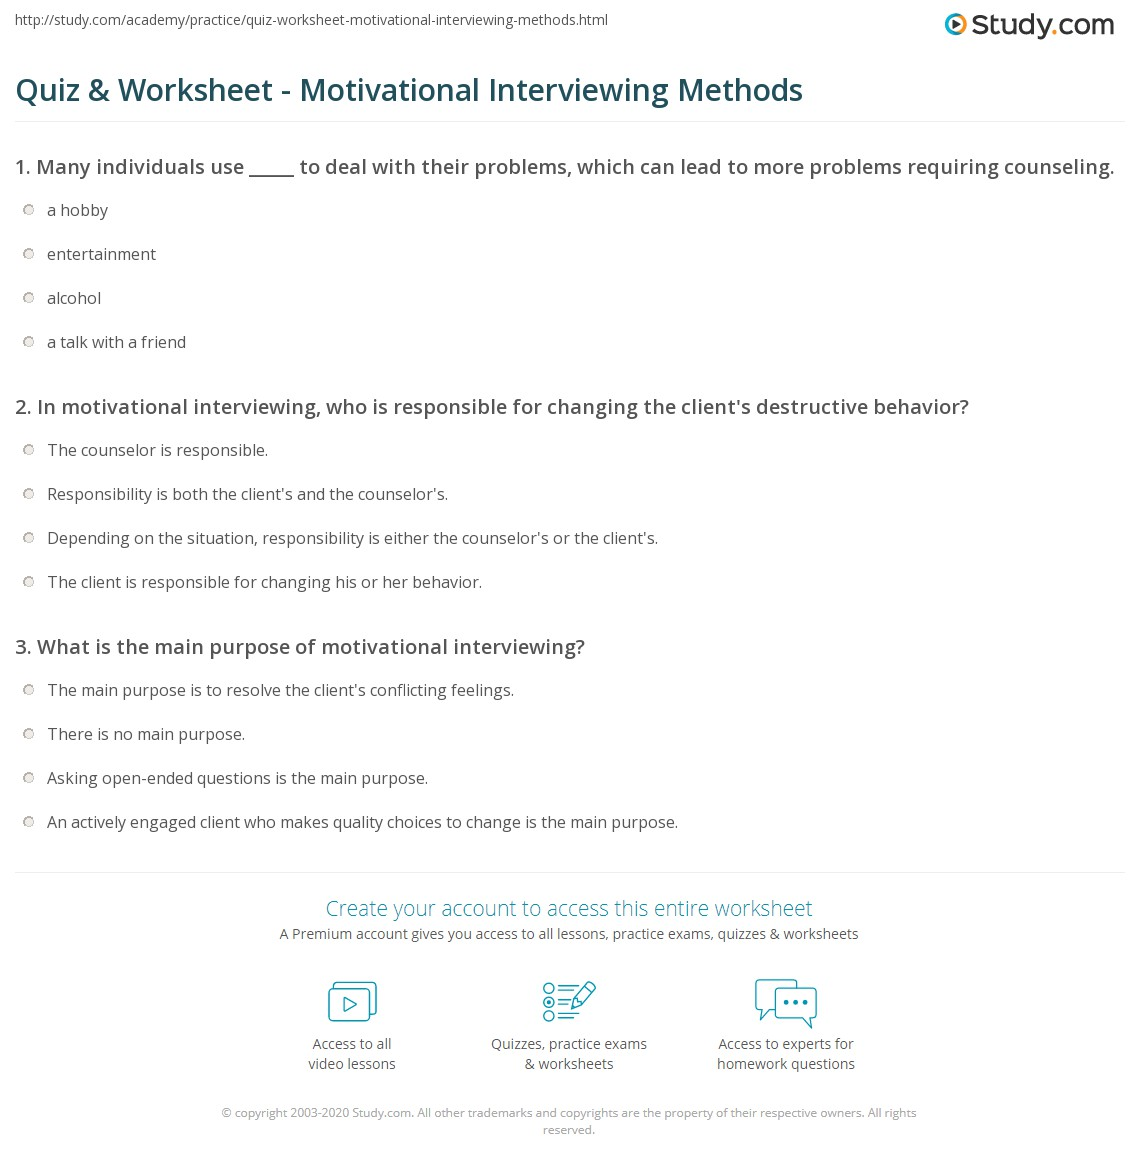 Quiz  Worksheet  Motivational Interviewing Methods  Study.com